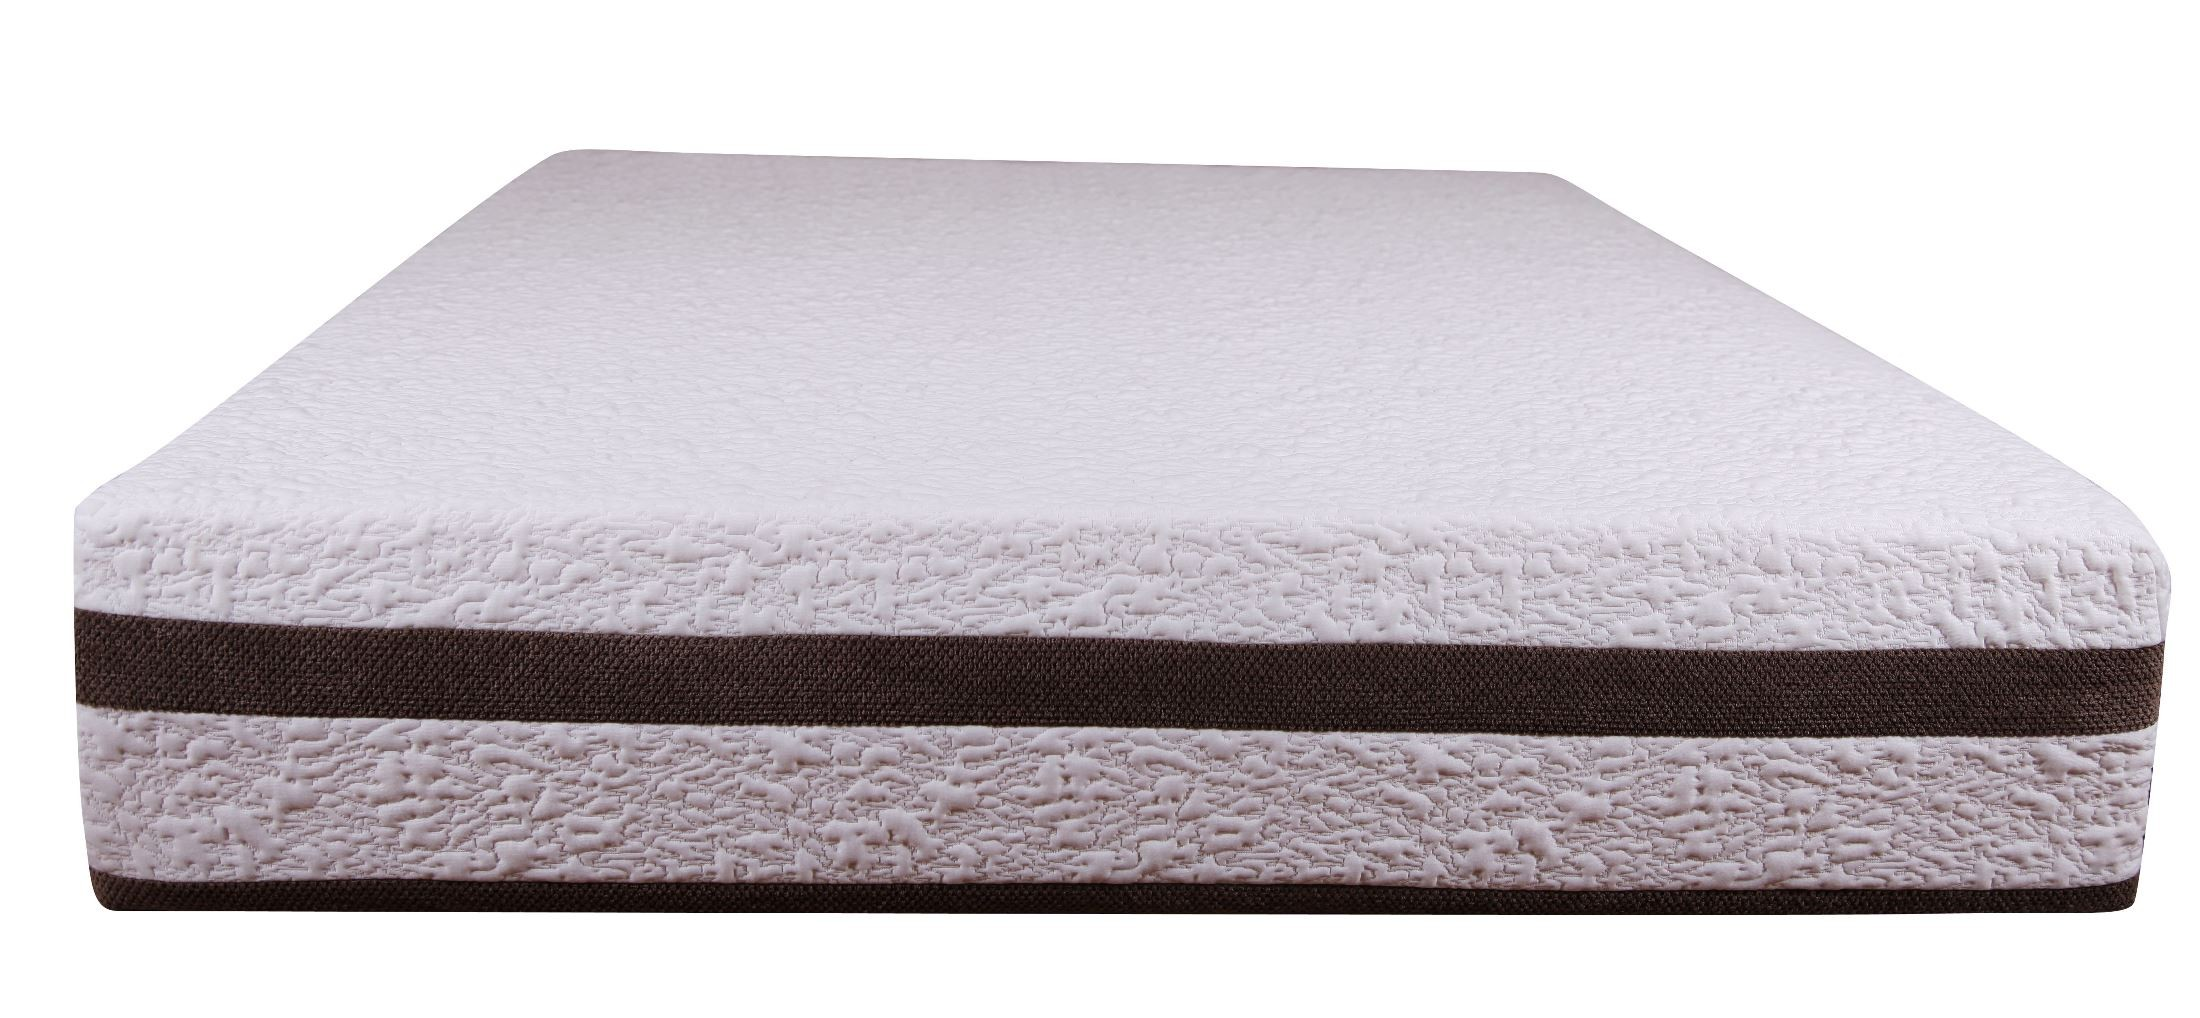 Nova 11 5 Memory Foam King Size Mattress From Klaussner Novakkmat Coleman Furniture